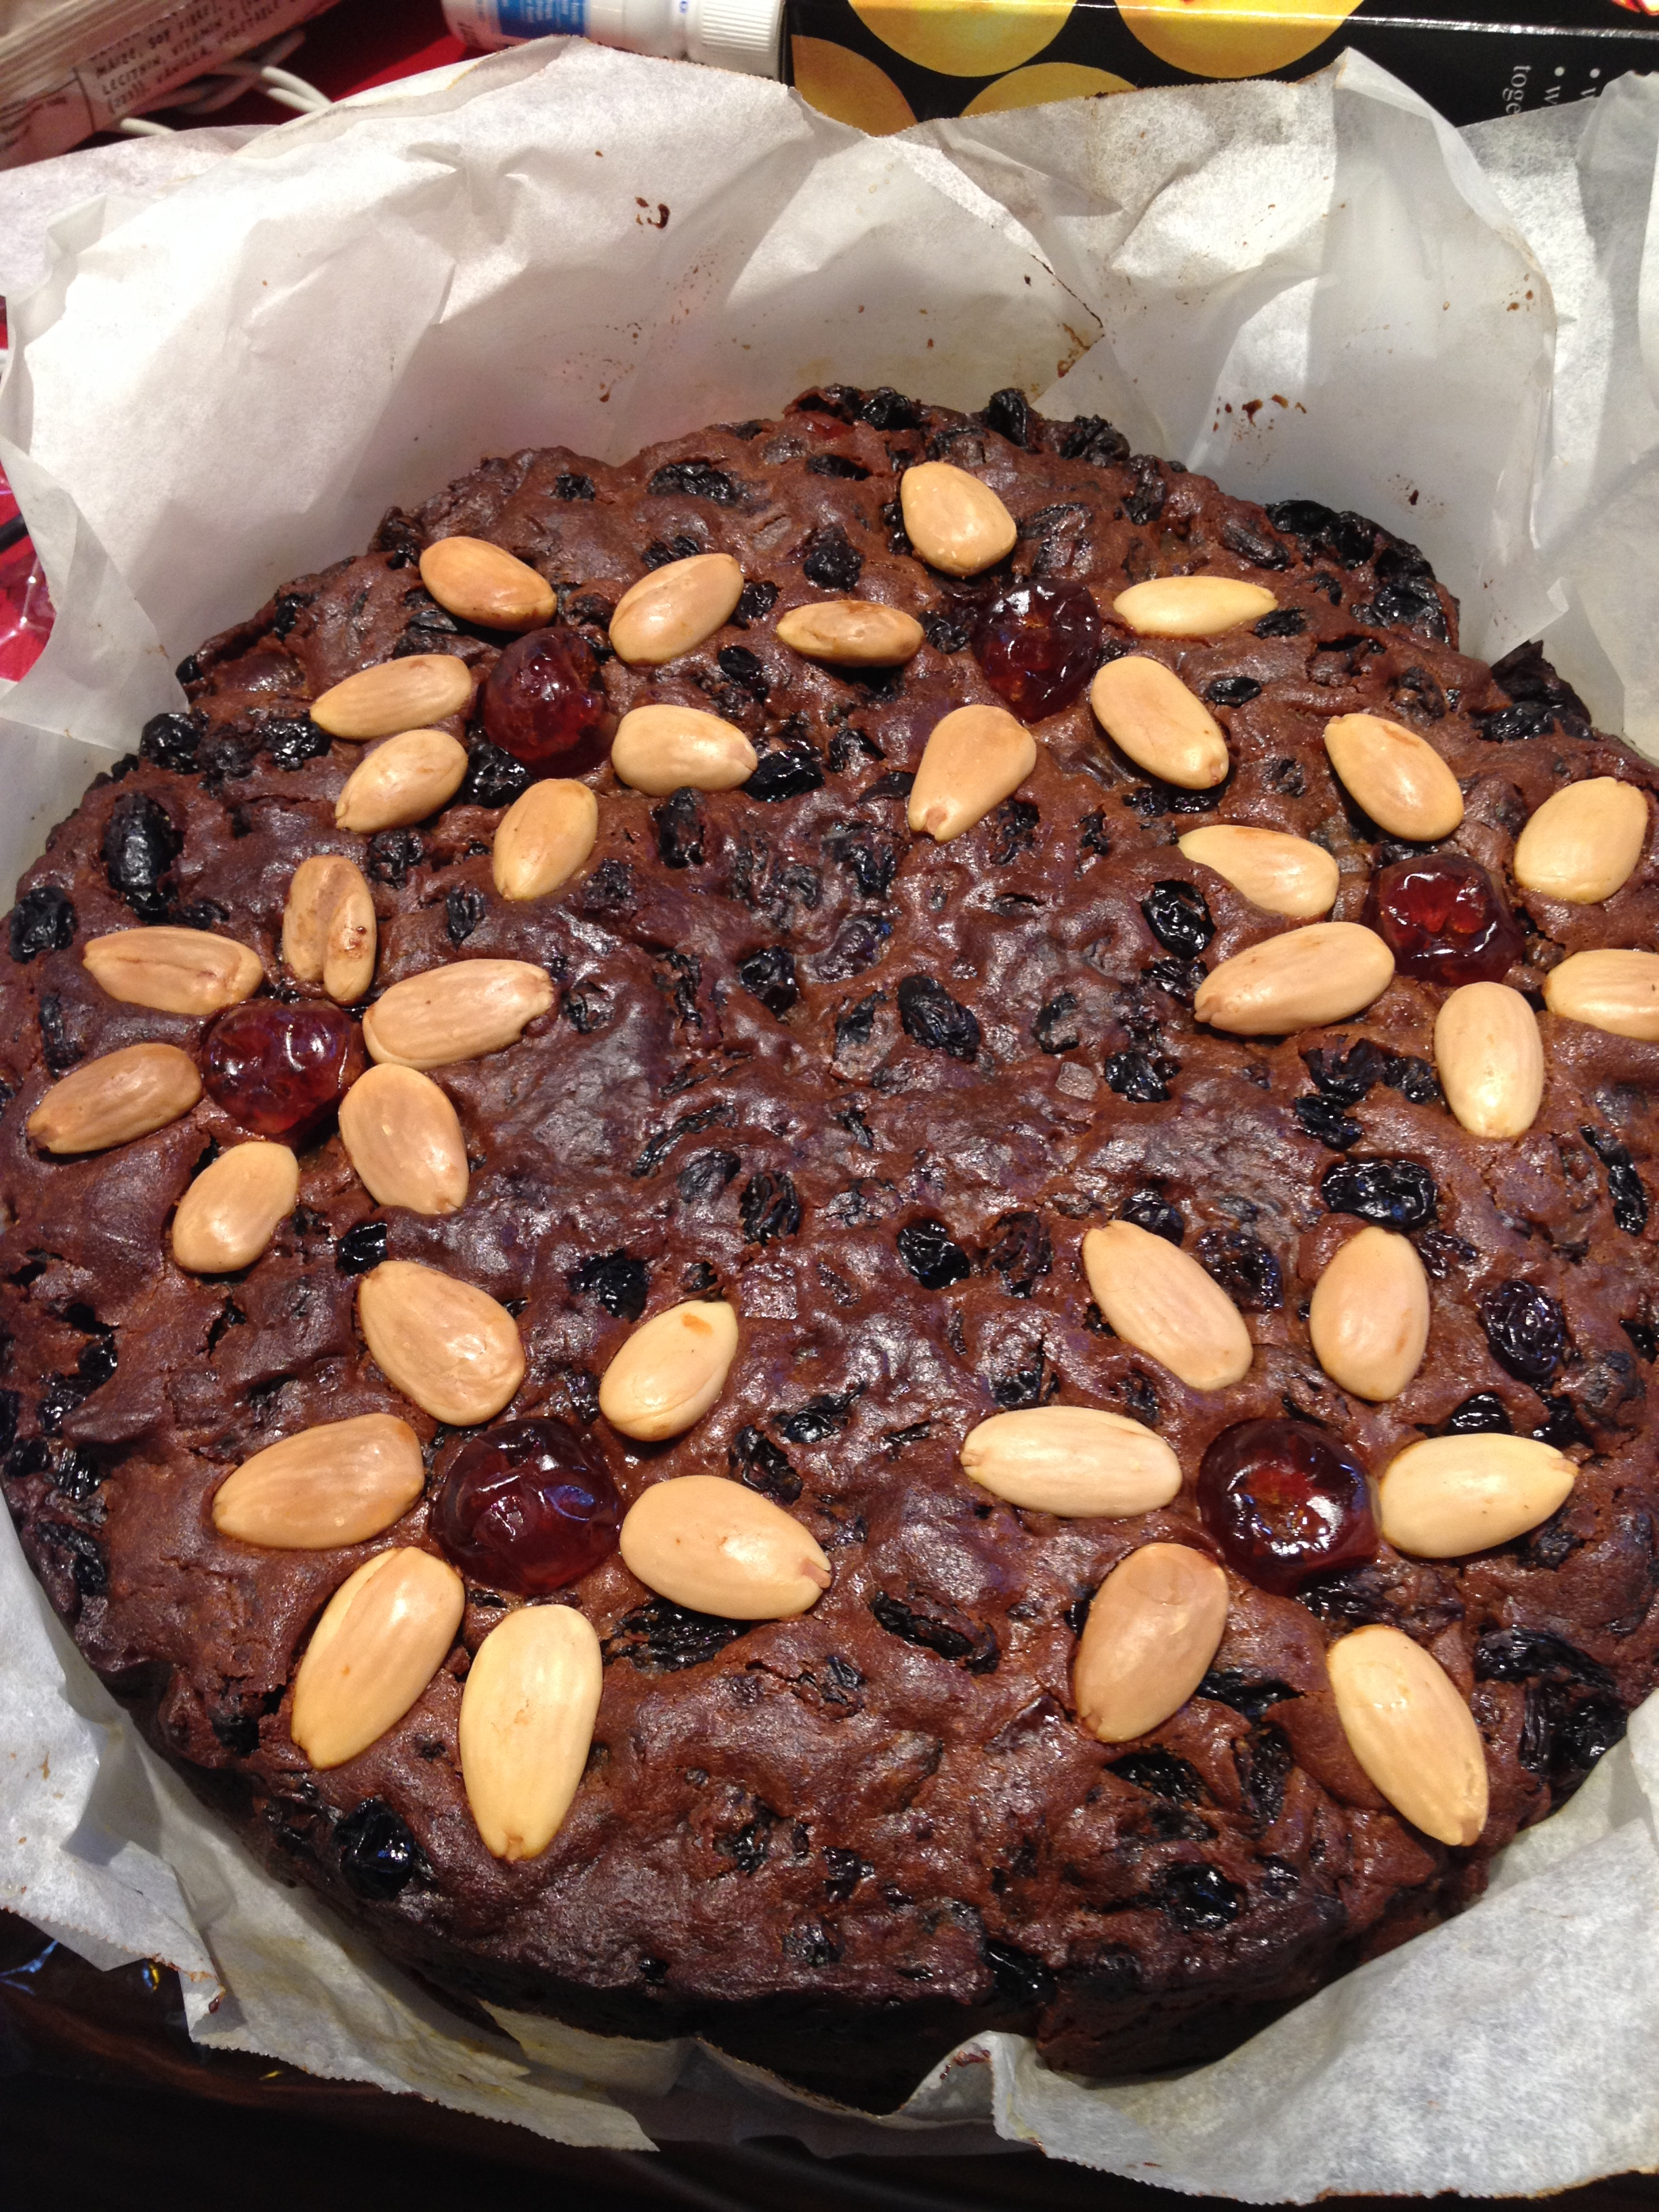 Have you soaked the fruit for your Christmas Cake yet?